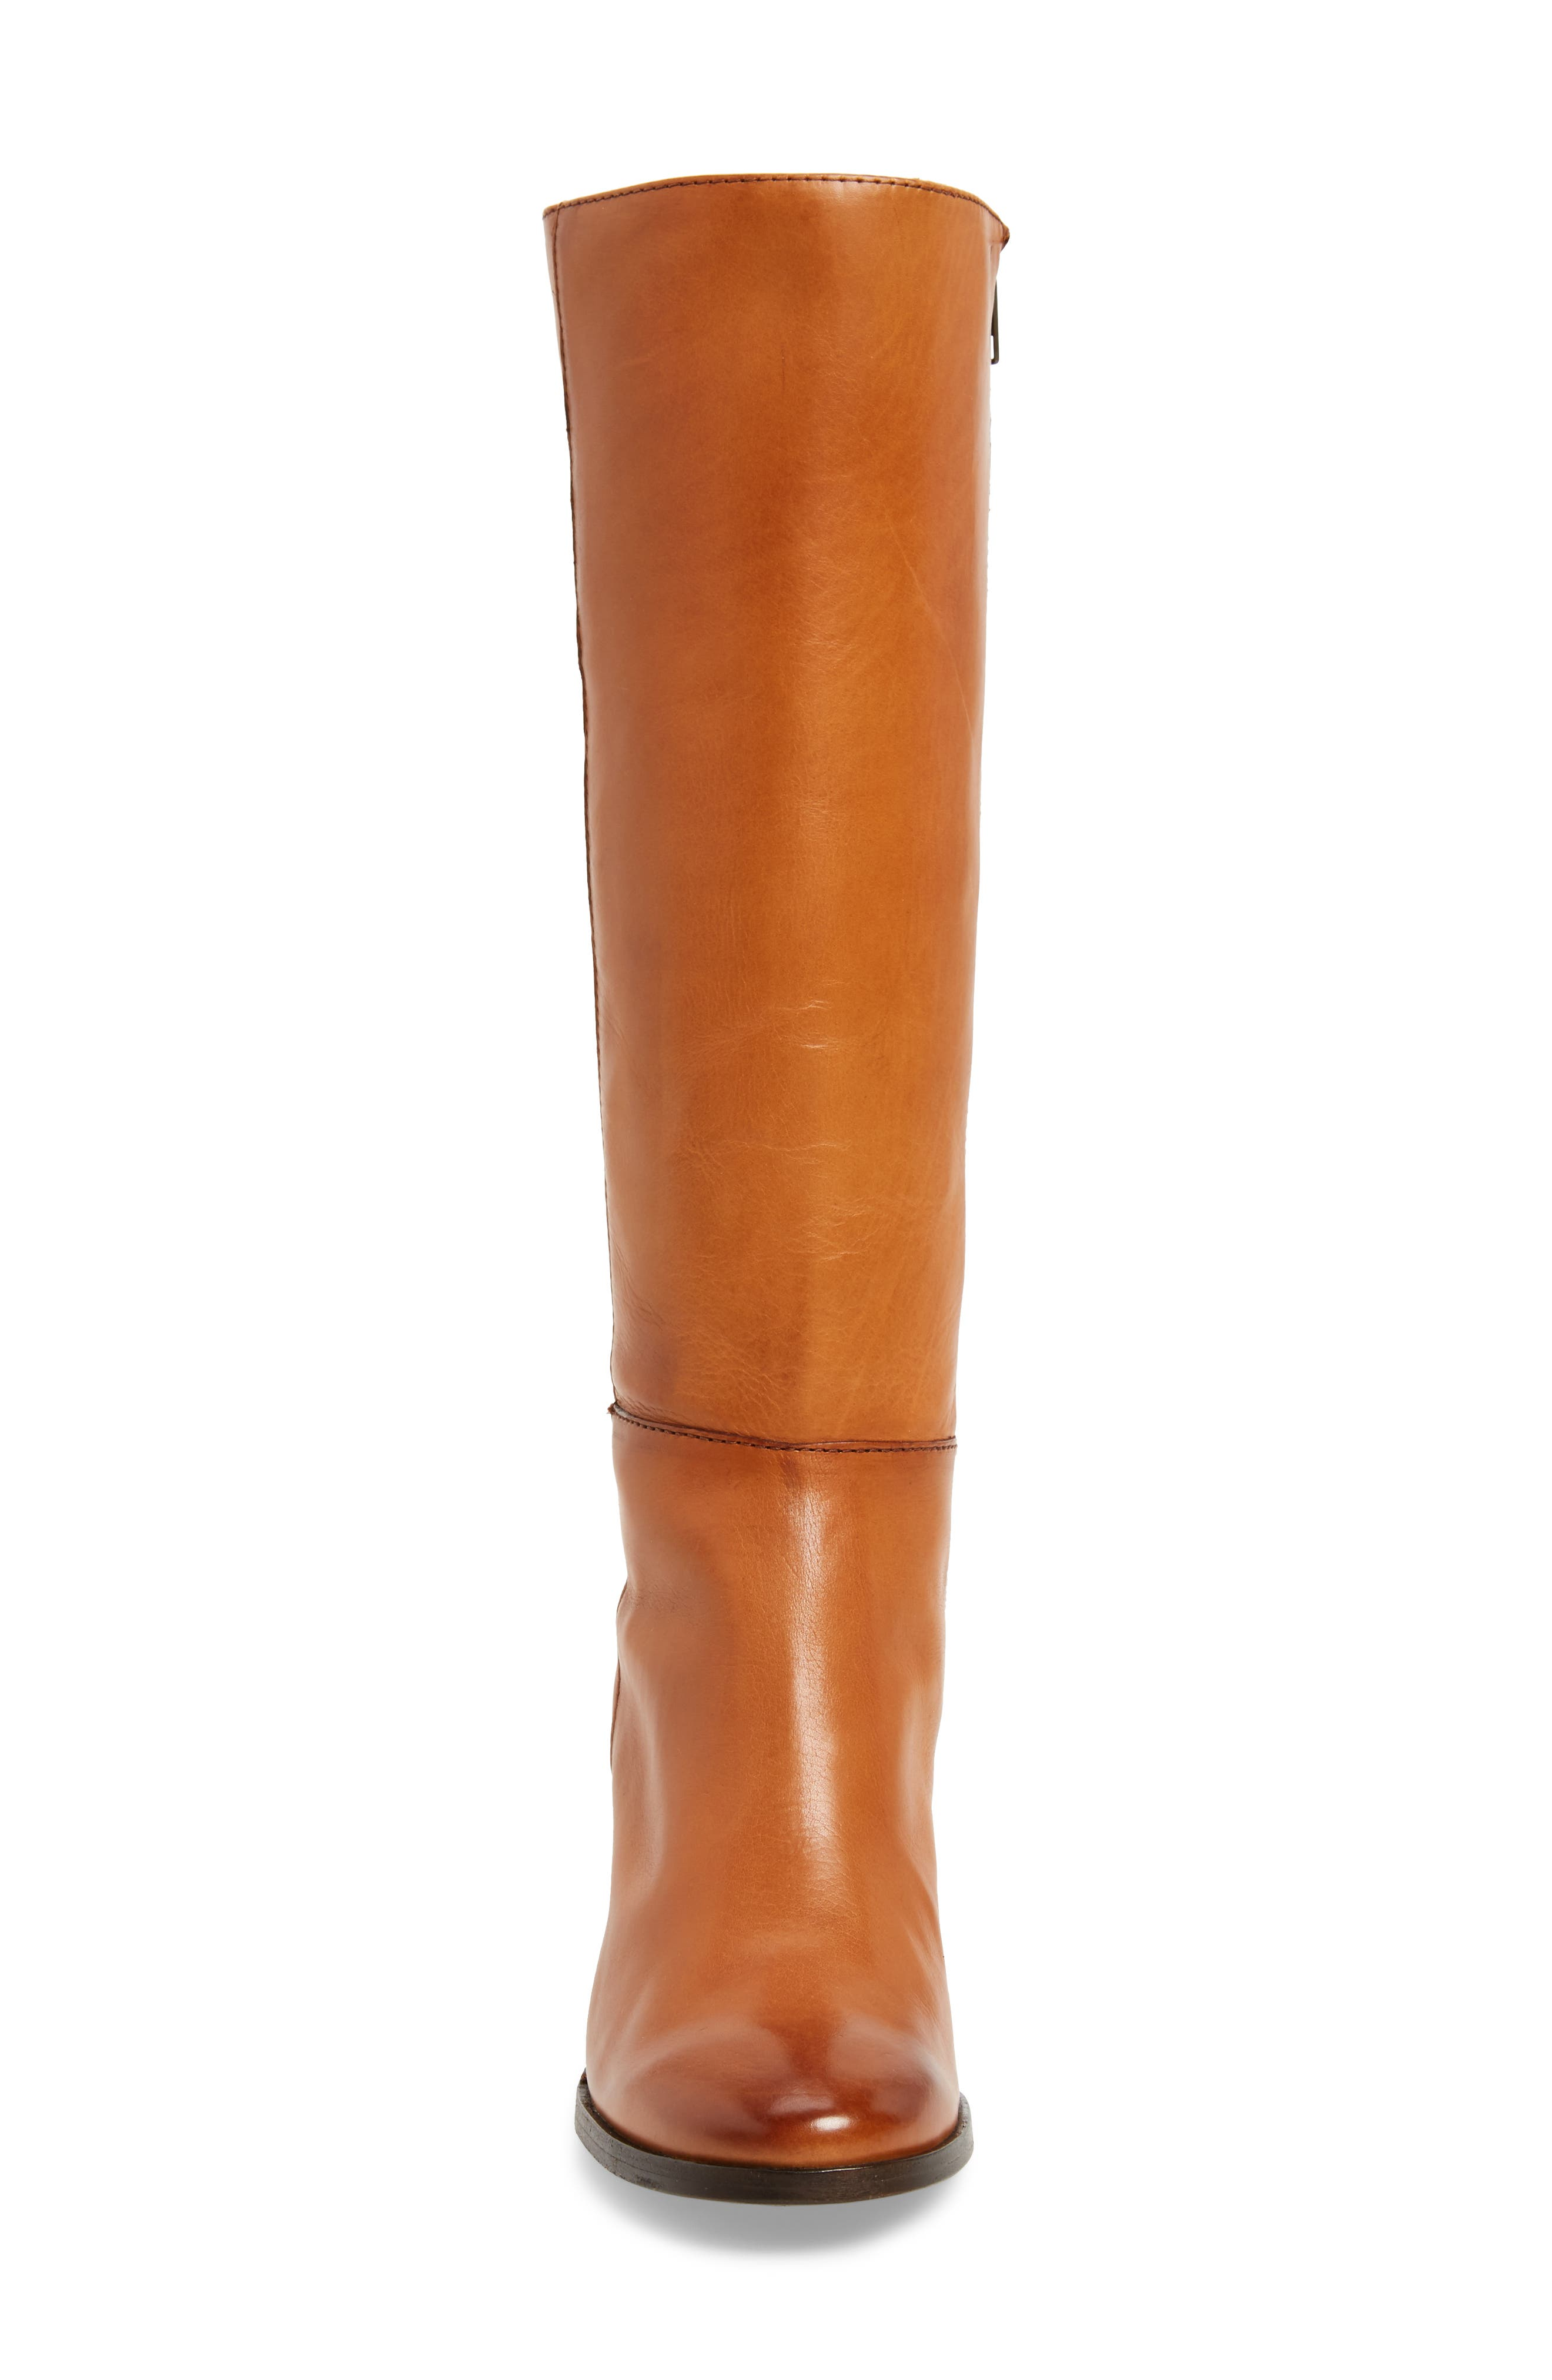 Nova Floral Embroidered Knee High Boot,                             Alternate thumbnail 4, color,                             238